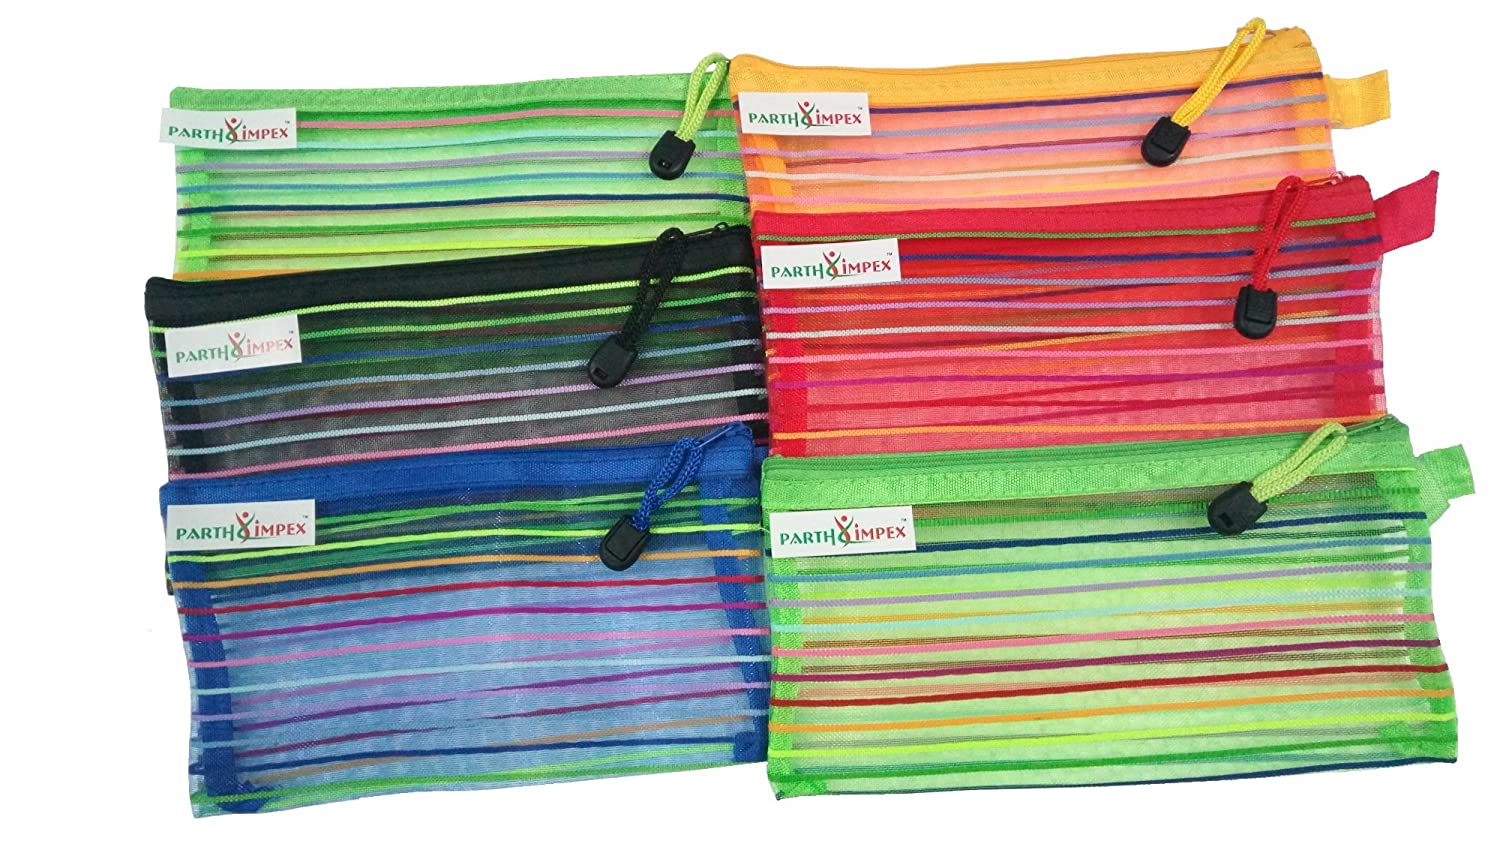 """PARTH IMPEX Mesh Pouch with Zipper (Pack of 6) Multipurpose Travel Storage Organizer Jewelry Candy Cosmetic Toiletry Stationary Pen Pencil Makeup Bag Assorted Colors (Approx L 4.8"""" X W 9"""")"""